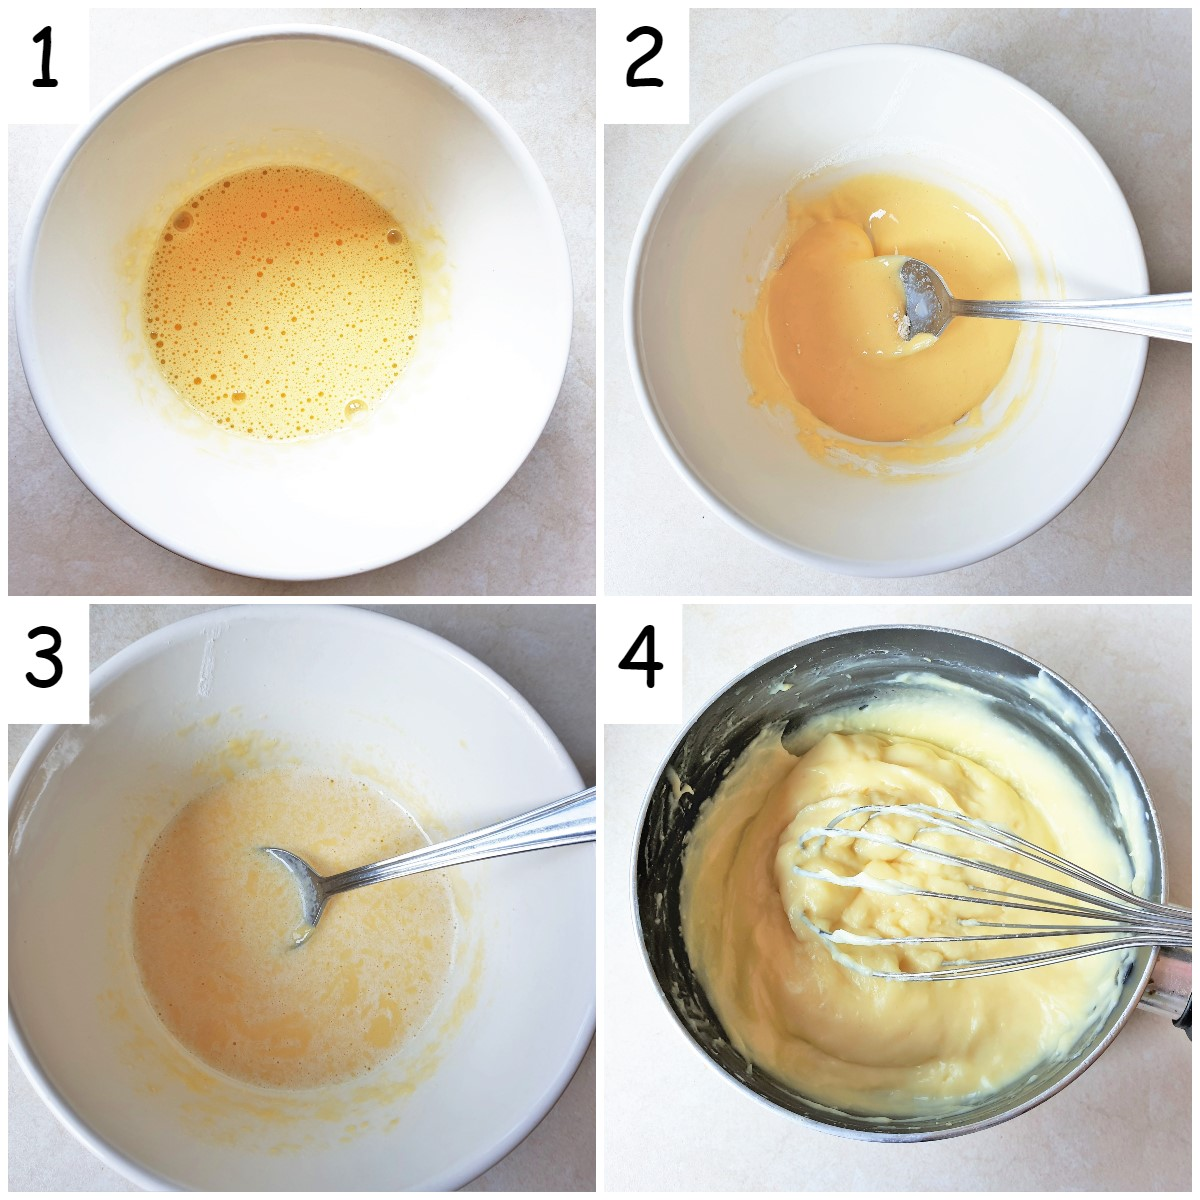 Steps for making creme patissiere.